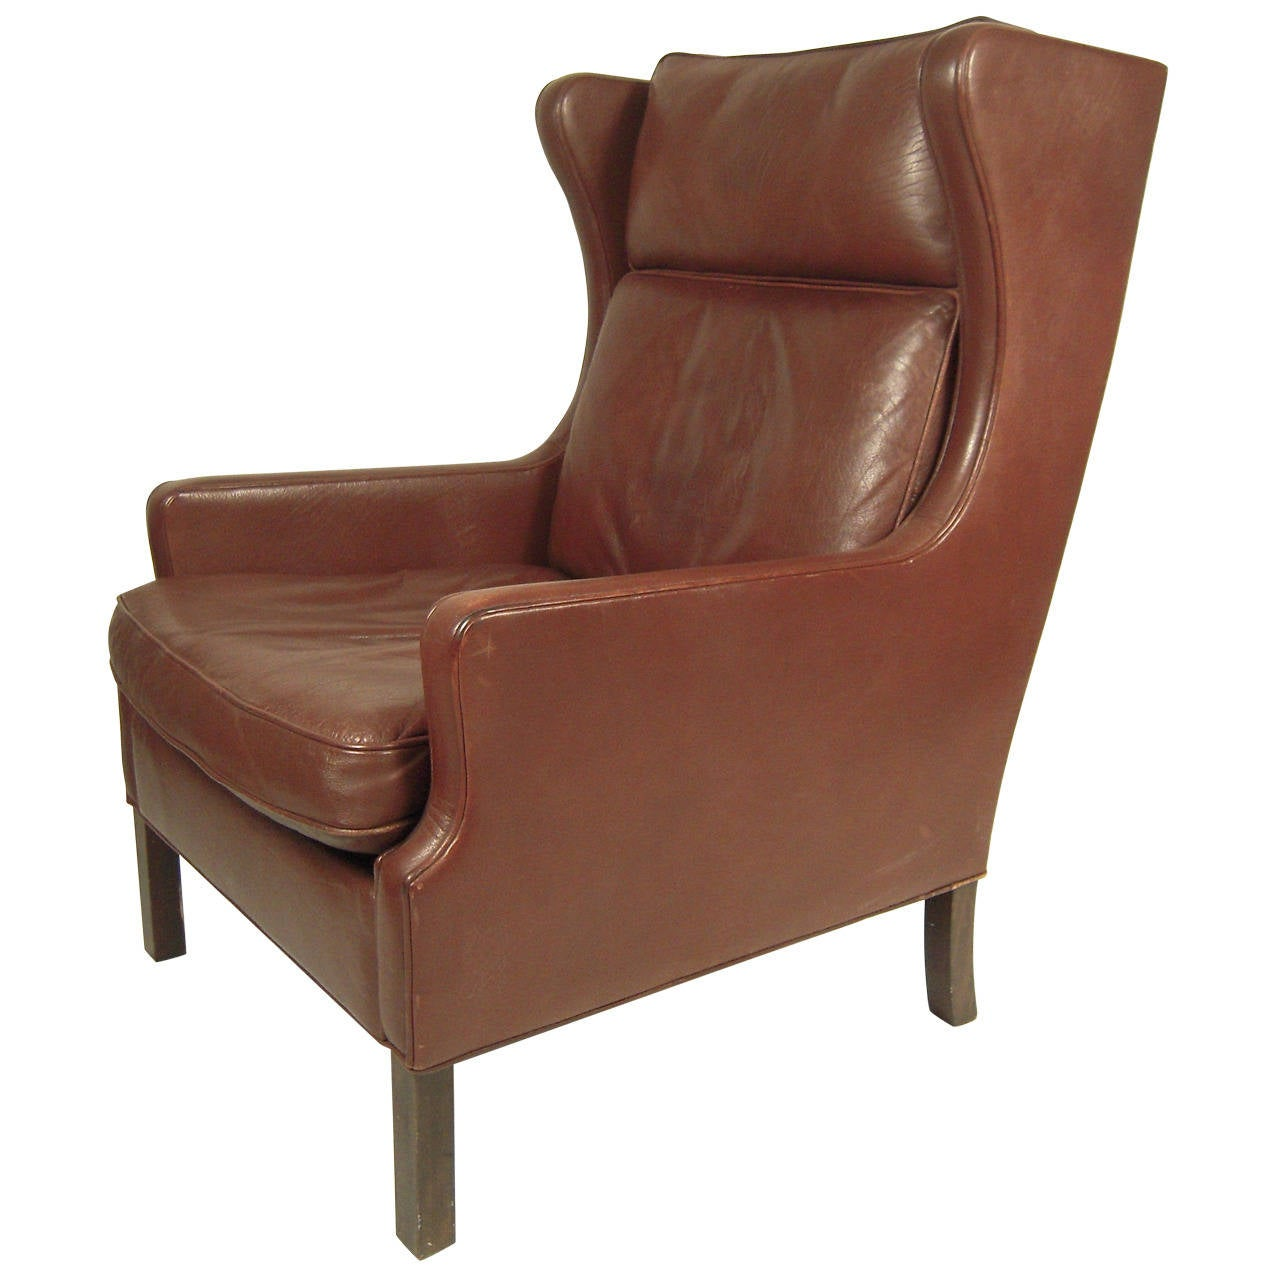 Vintage danish mid century leather wingback chair at 1stdibs Mid century chairs